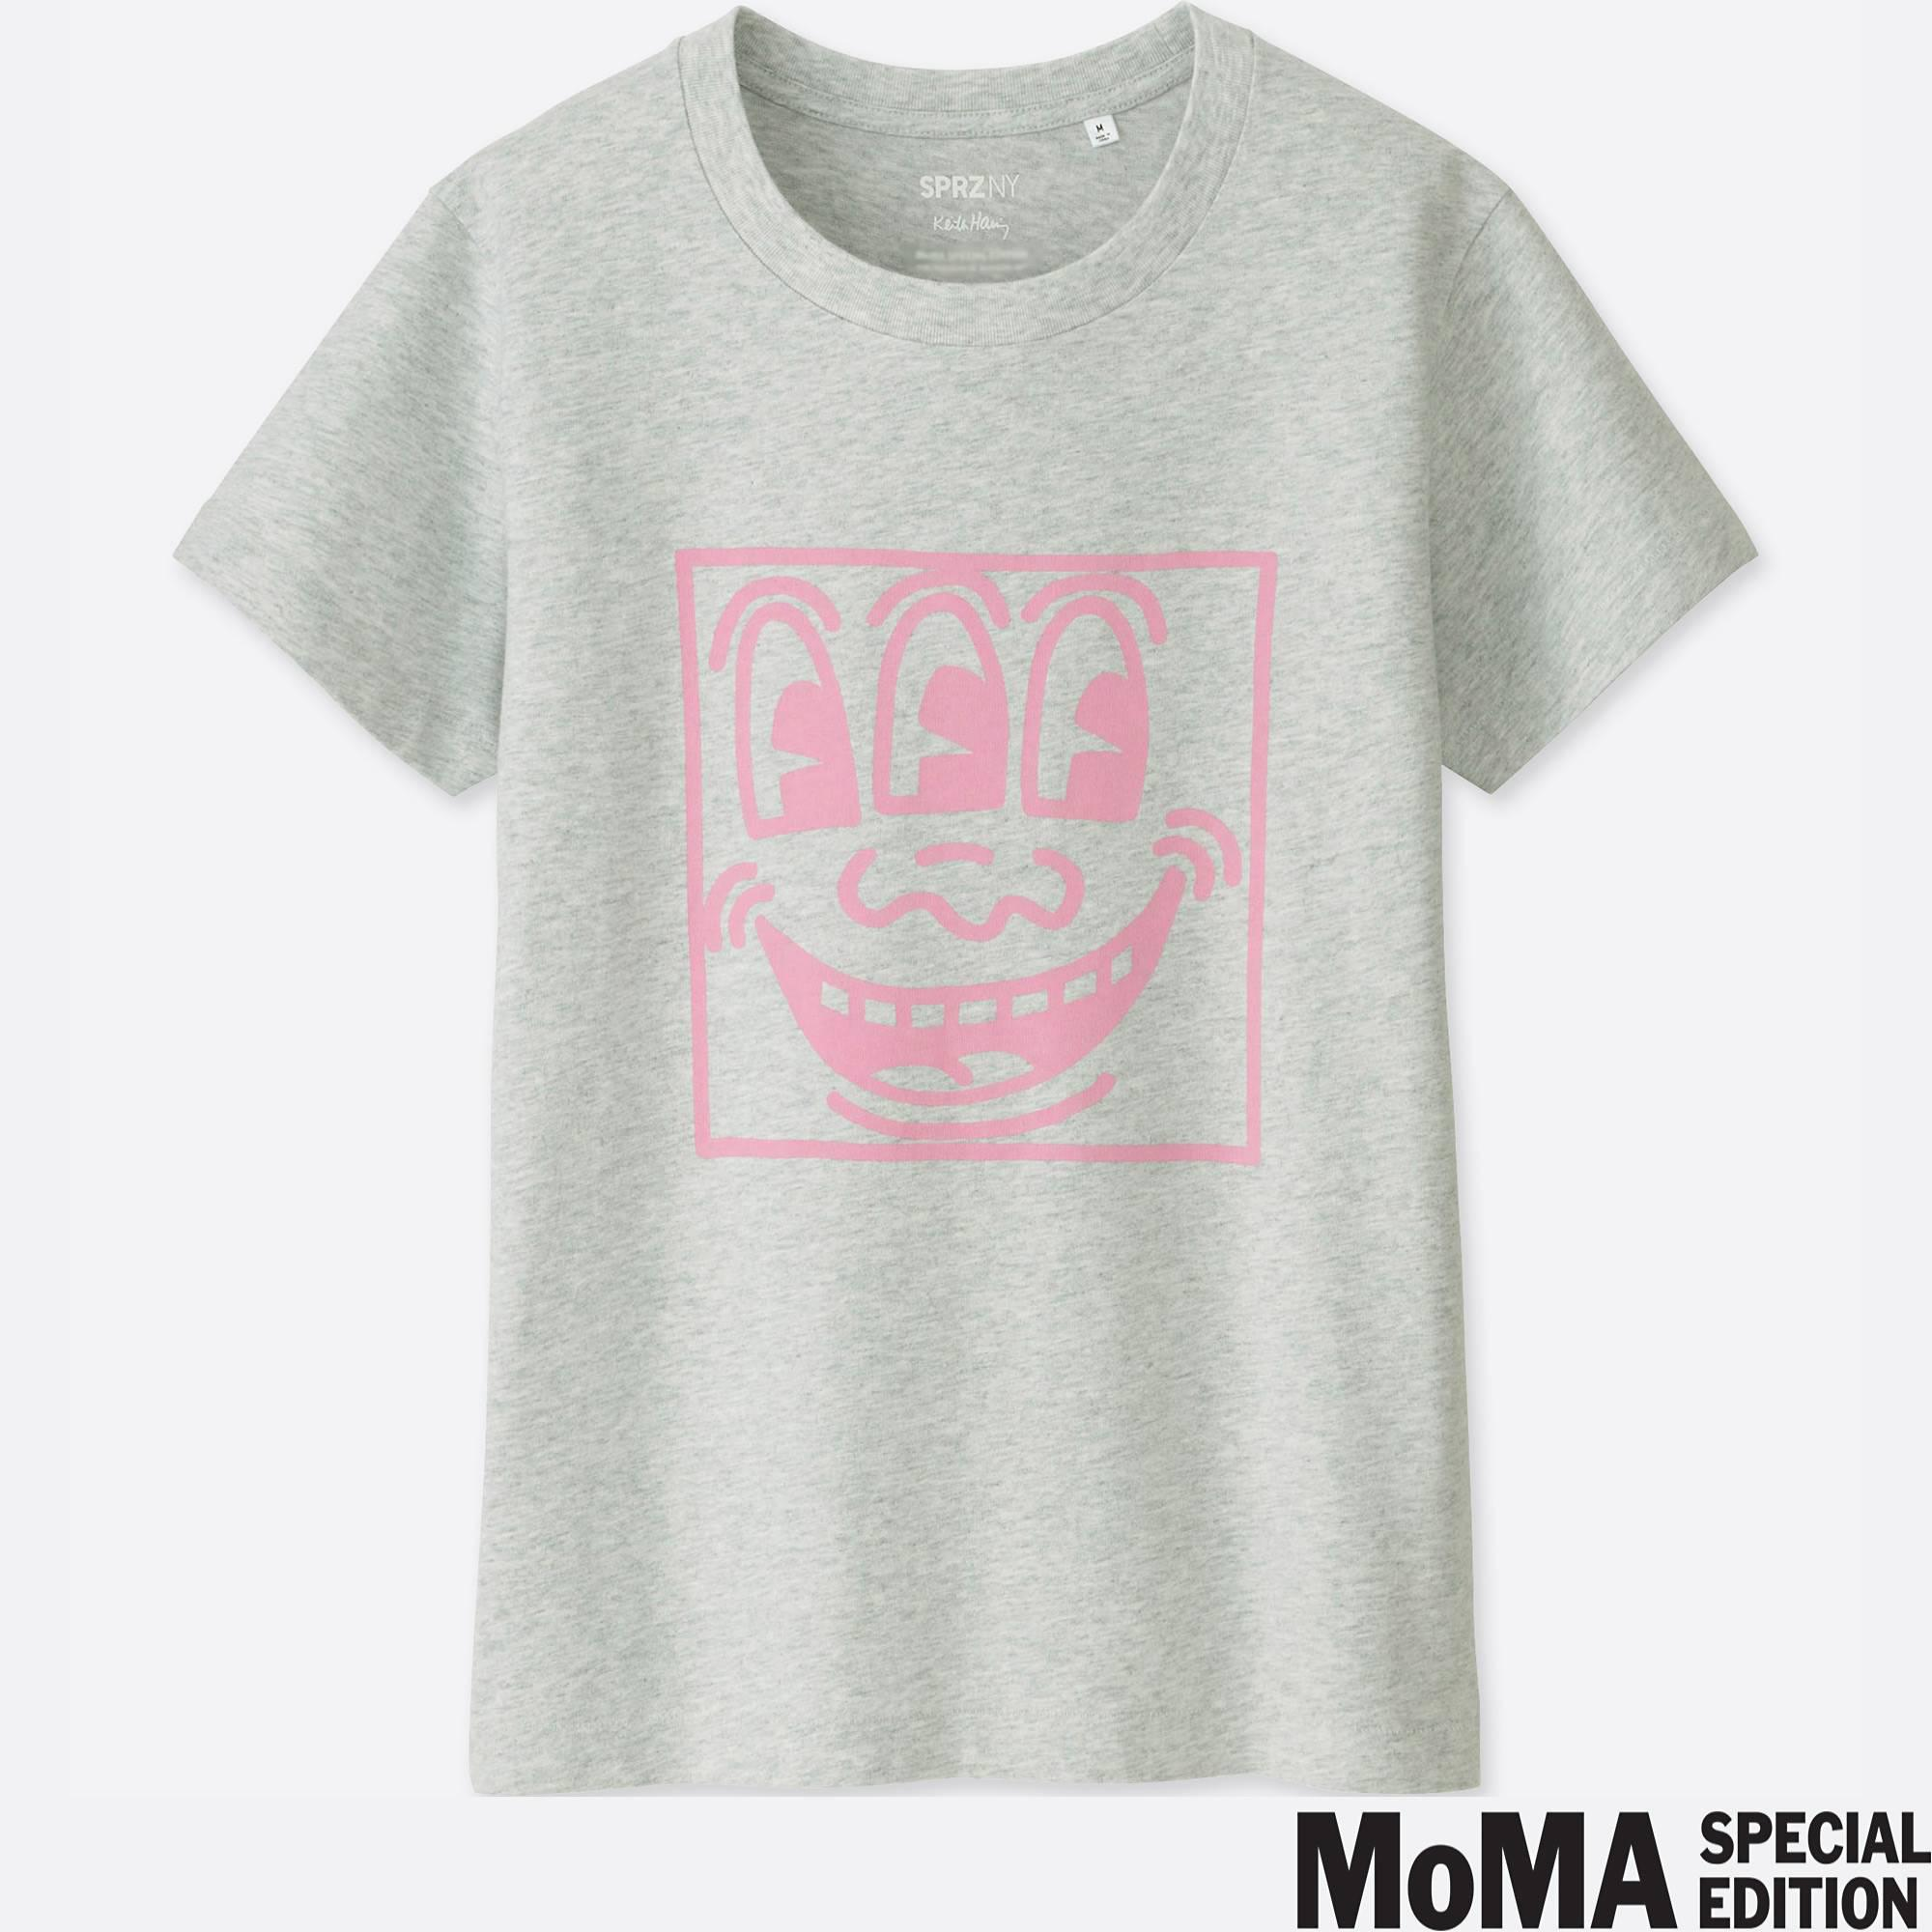 e5a9086b Lyst - Uniqlo Sprz Ny Graphic T-shirt (keith Haring) in Gray